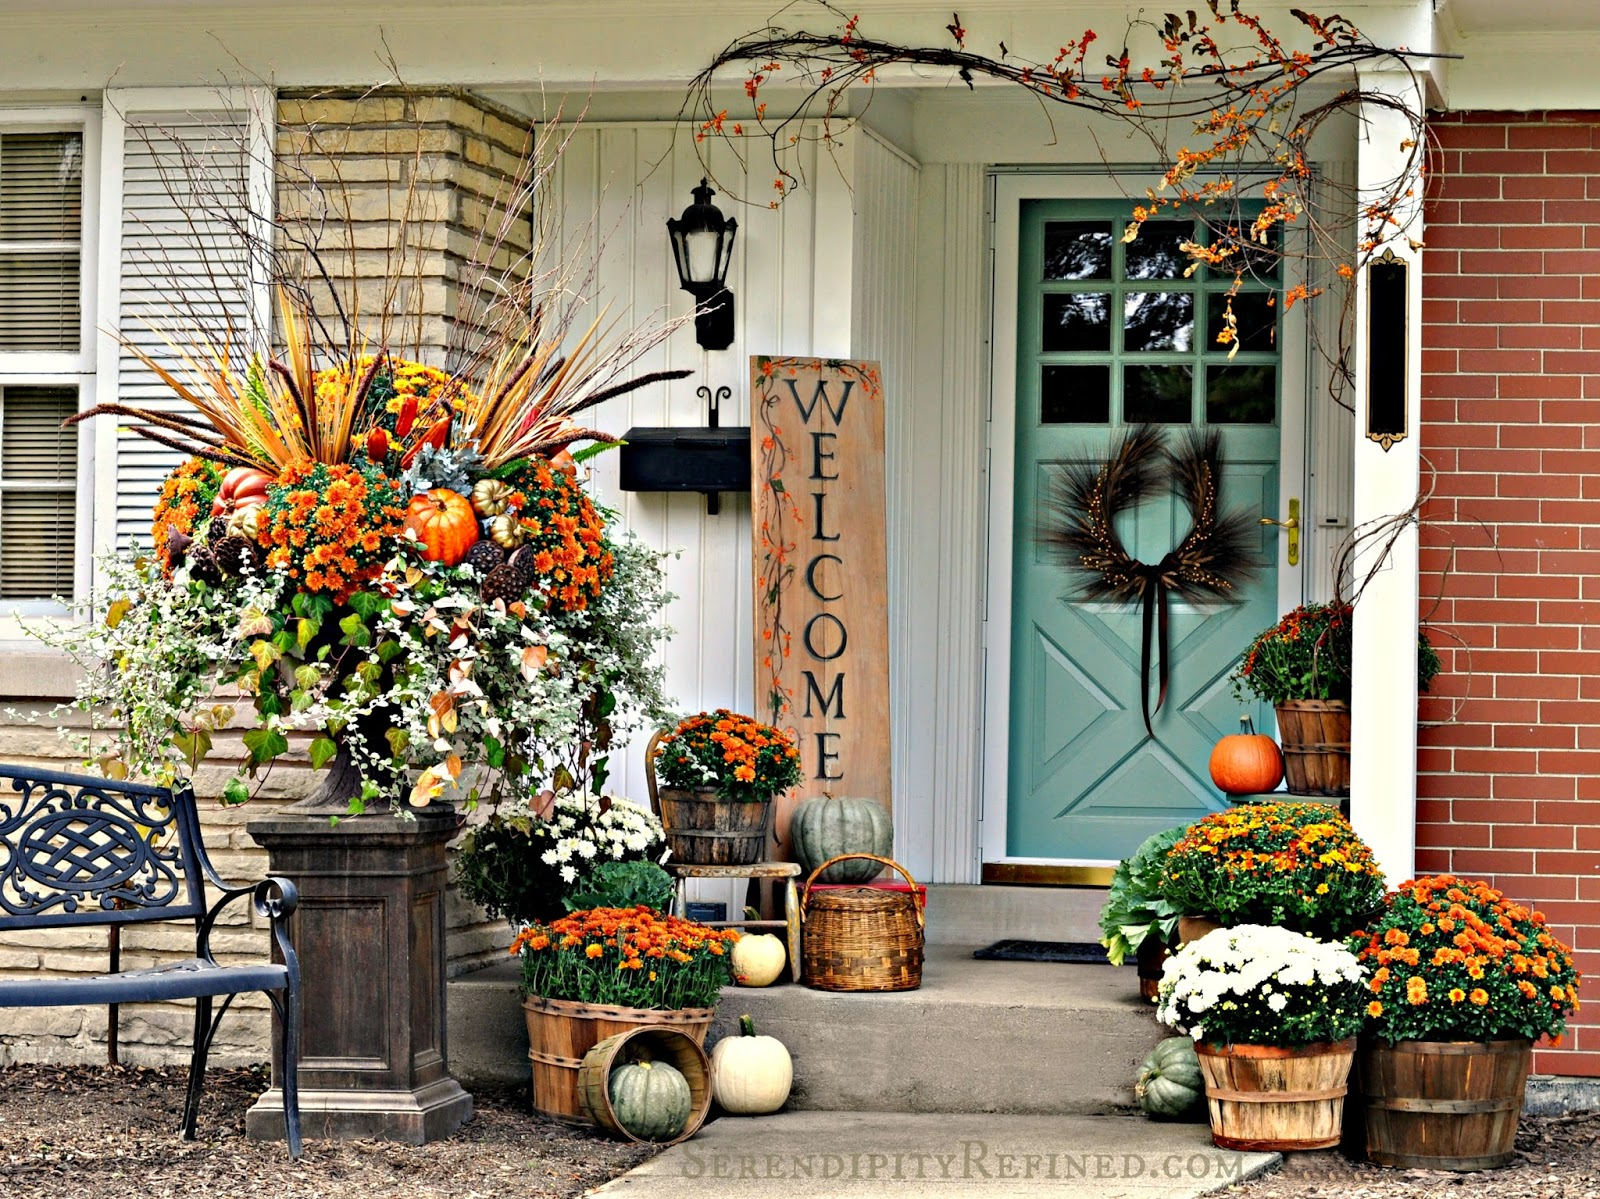 Fabulous outdoor decorating tips and ideas for fall zing for Pictures of fall decorations for outdoors